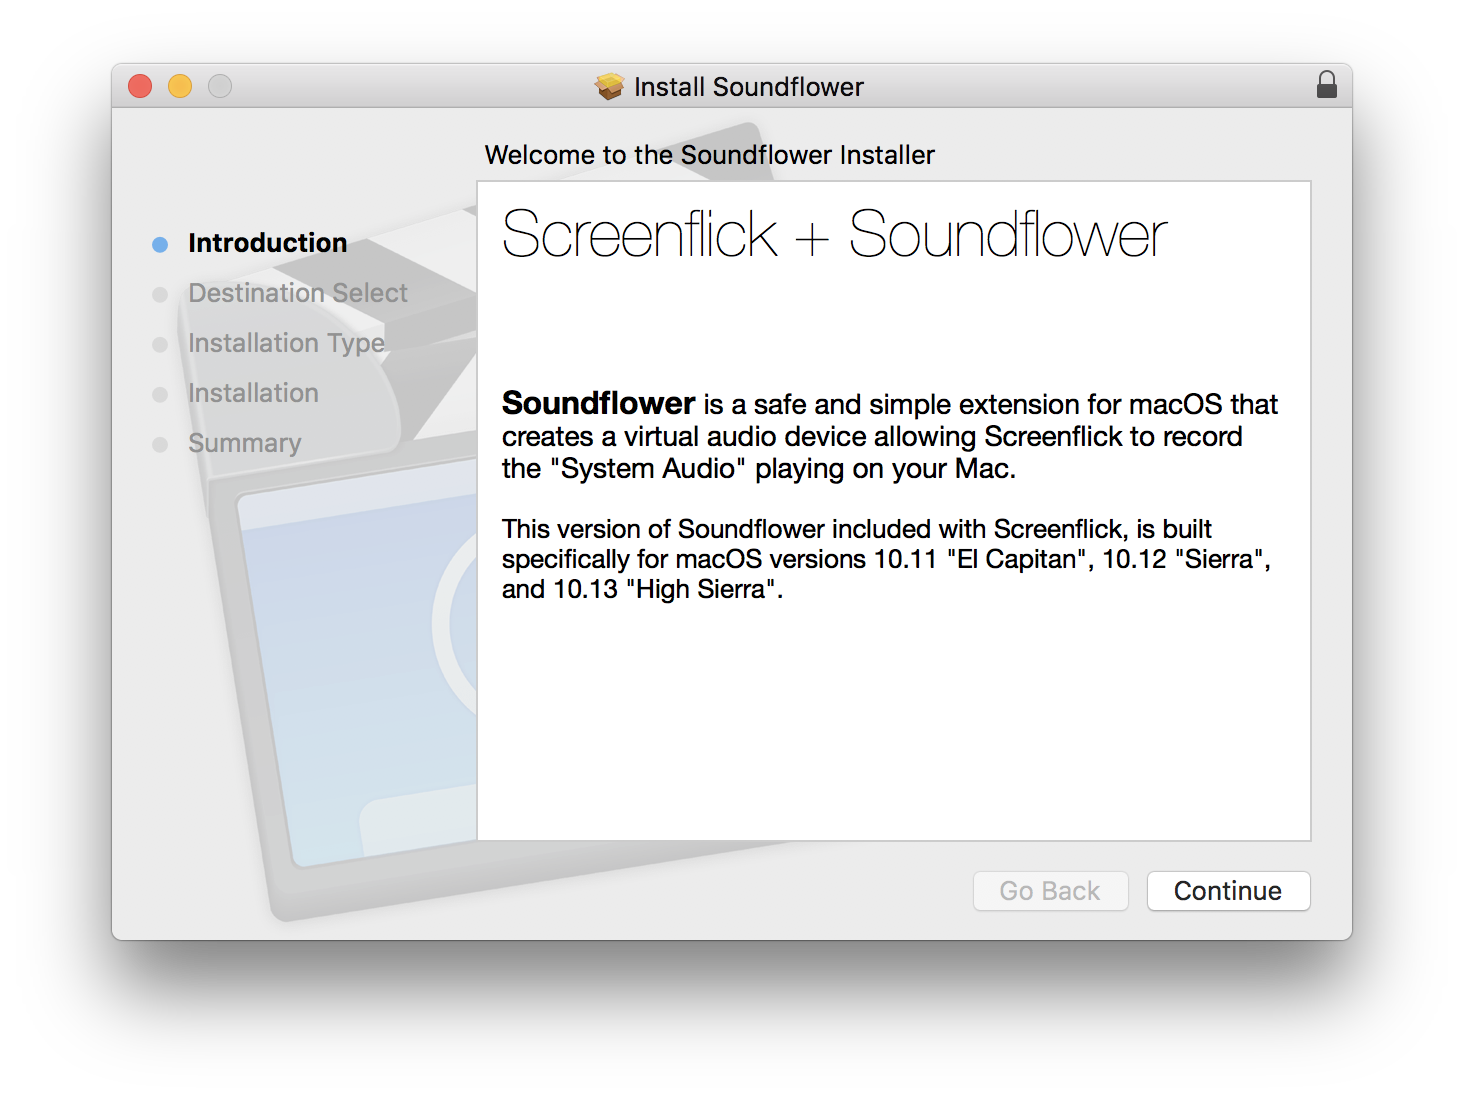 Screenflick Support – Installing Soundflower on macOS